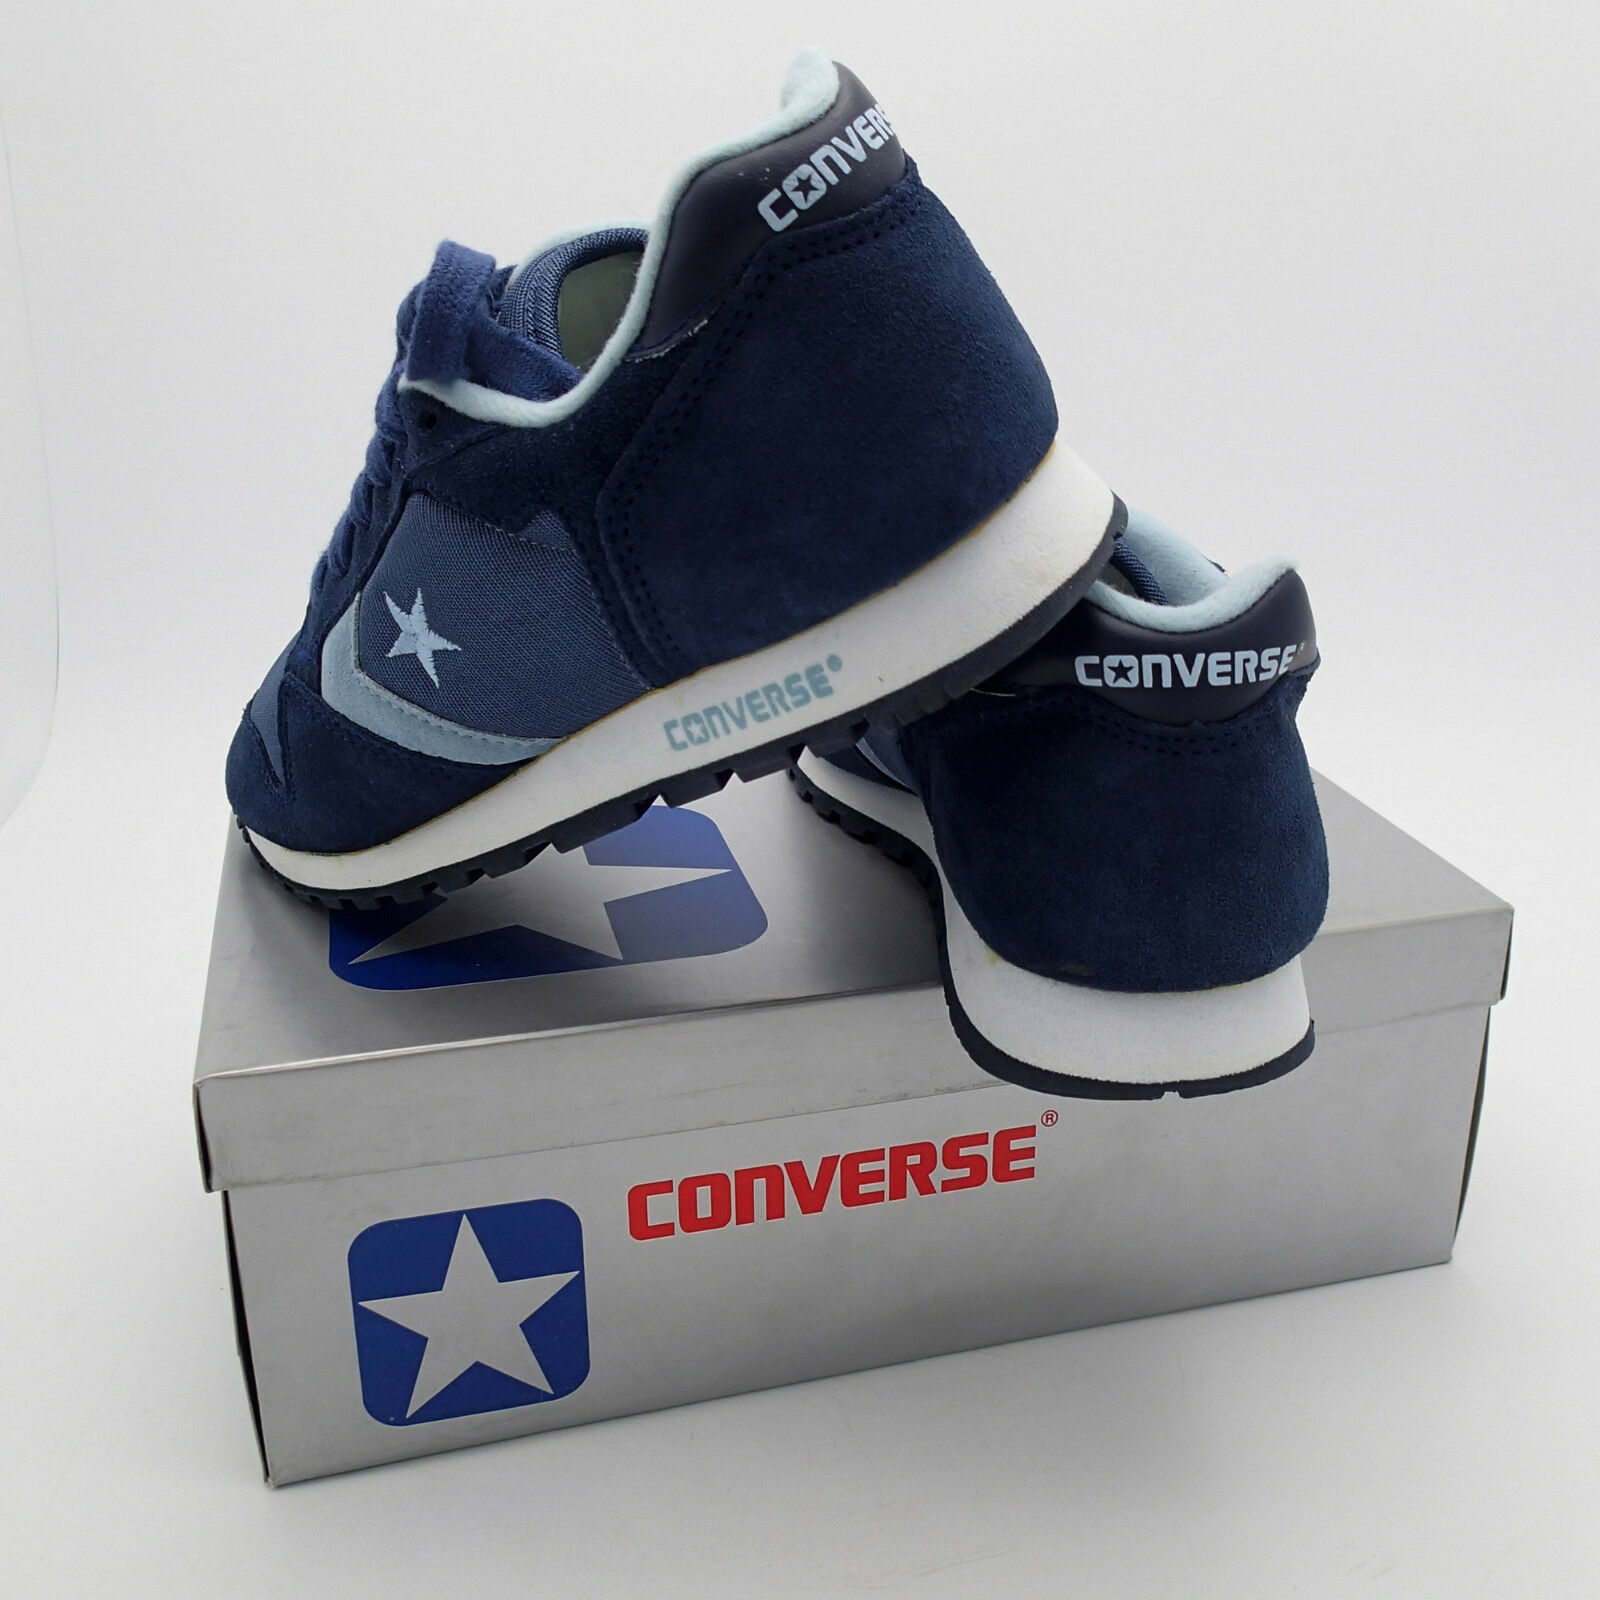 VTG 1980's New in in in Box Converse One Star Running shoes Suede Nylon SZ 6.5 Womens 7e0c80